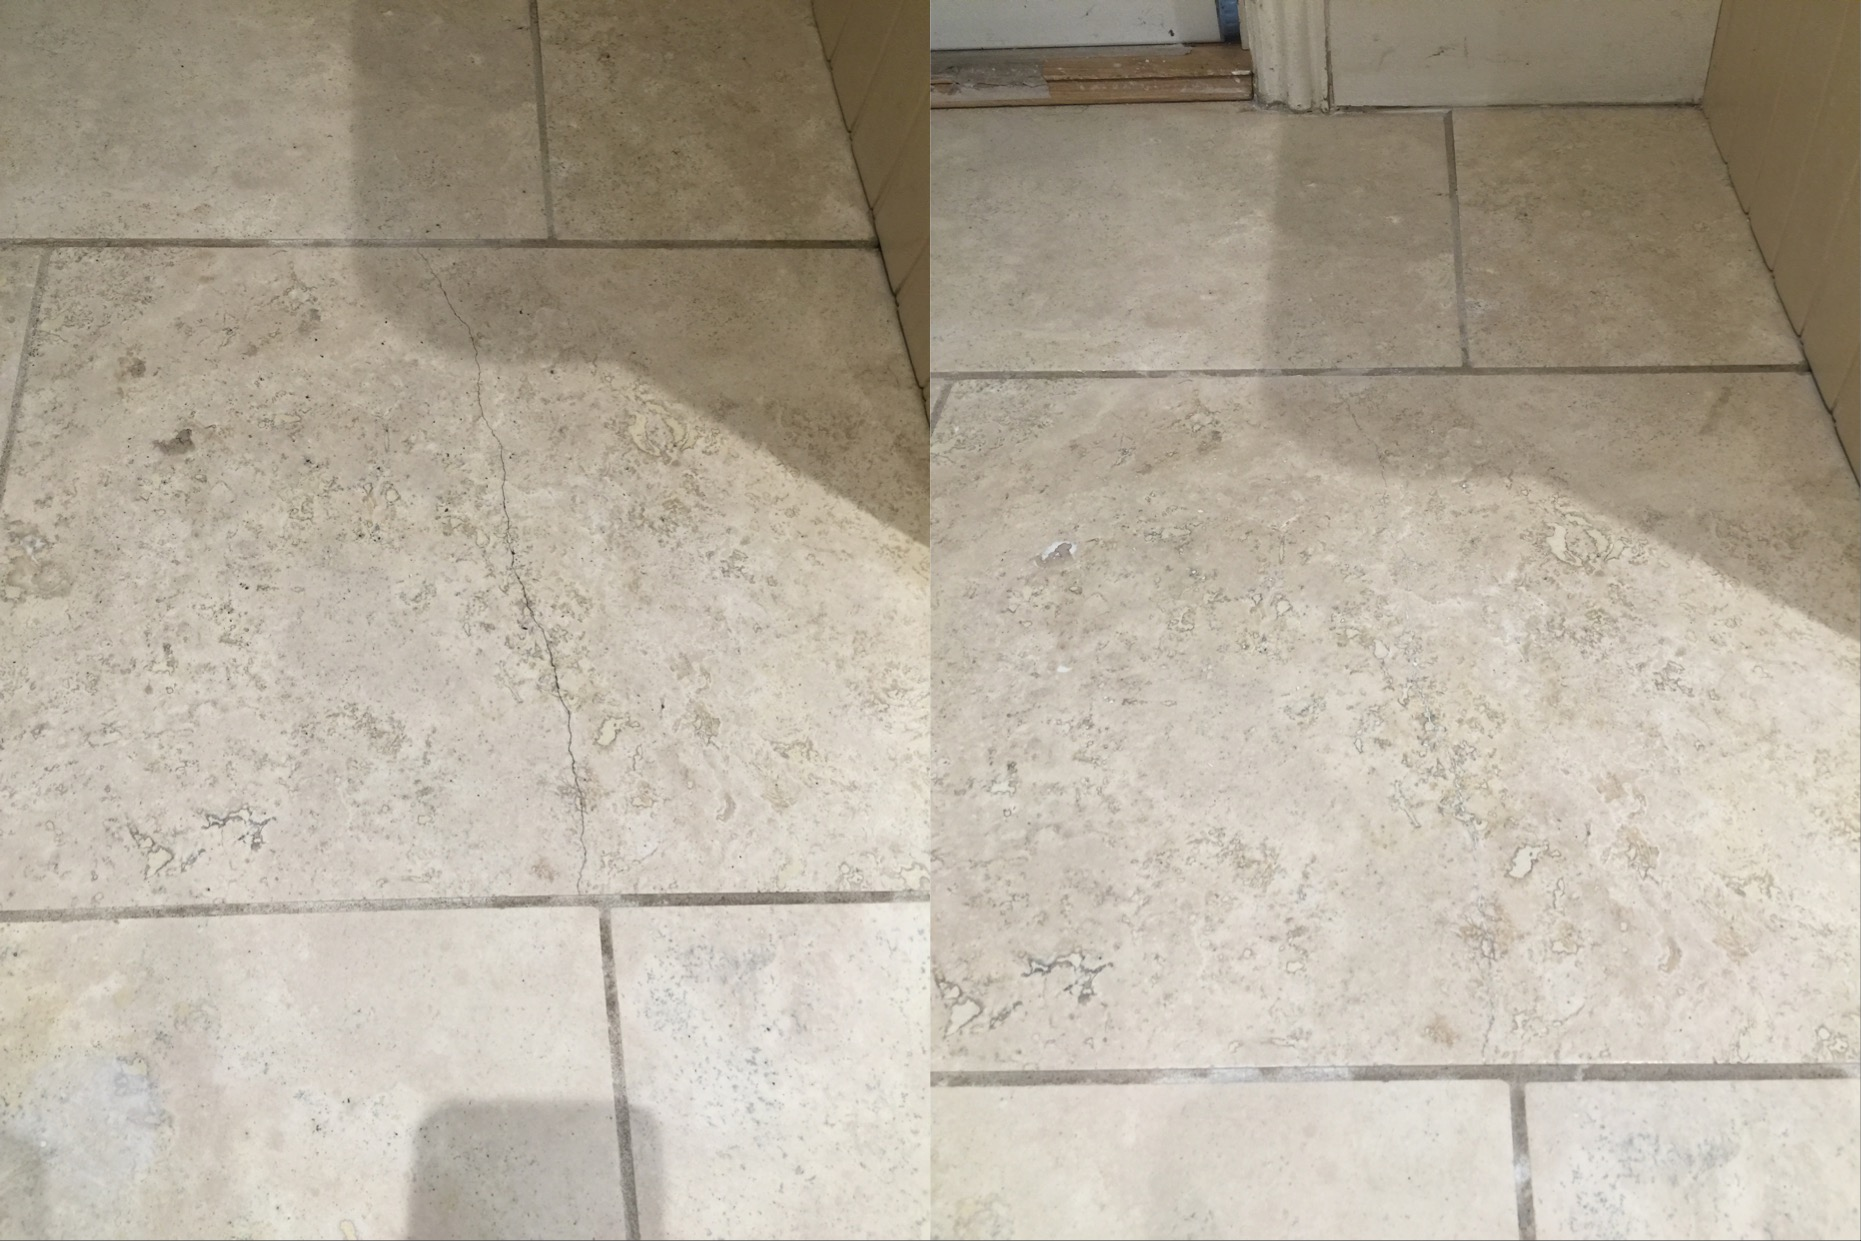 Stone Cleaning And Polishing Tips For Travertine Floors Information Tips And Stories About